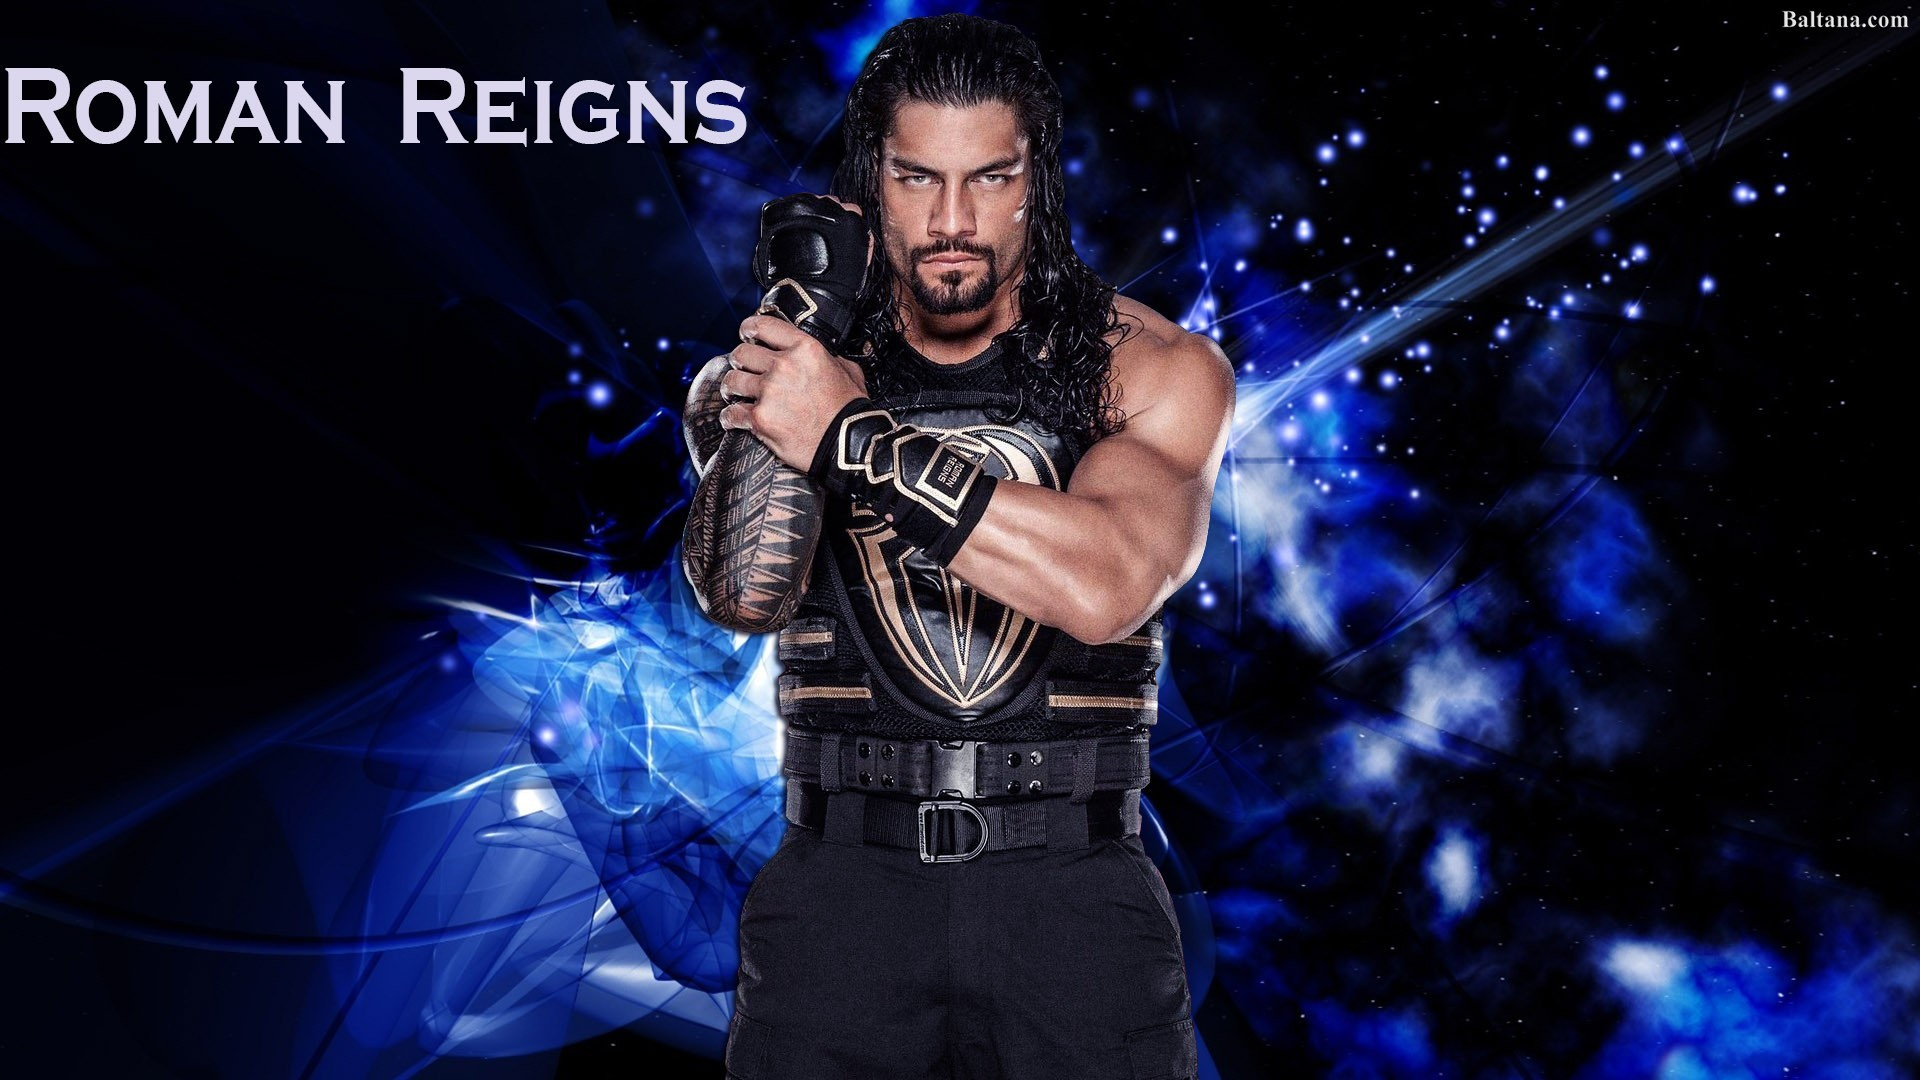 81+ roman reigns wallpapers on wallpaperplay